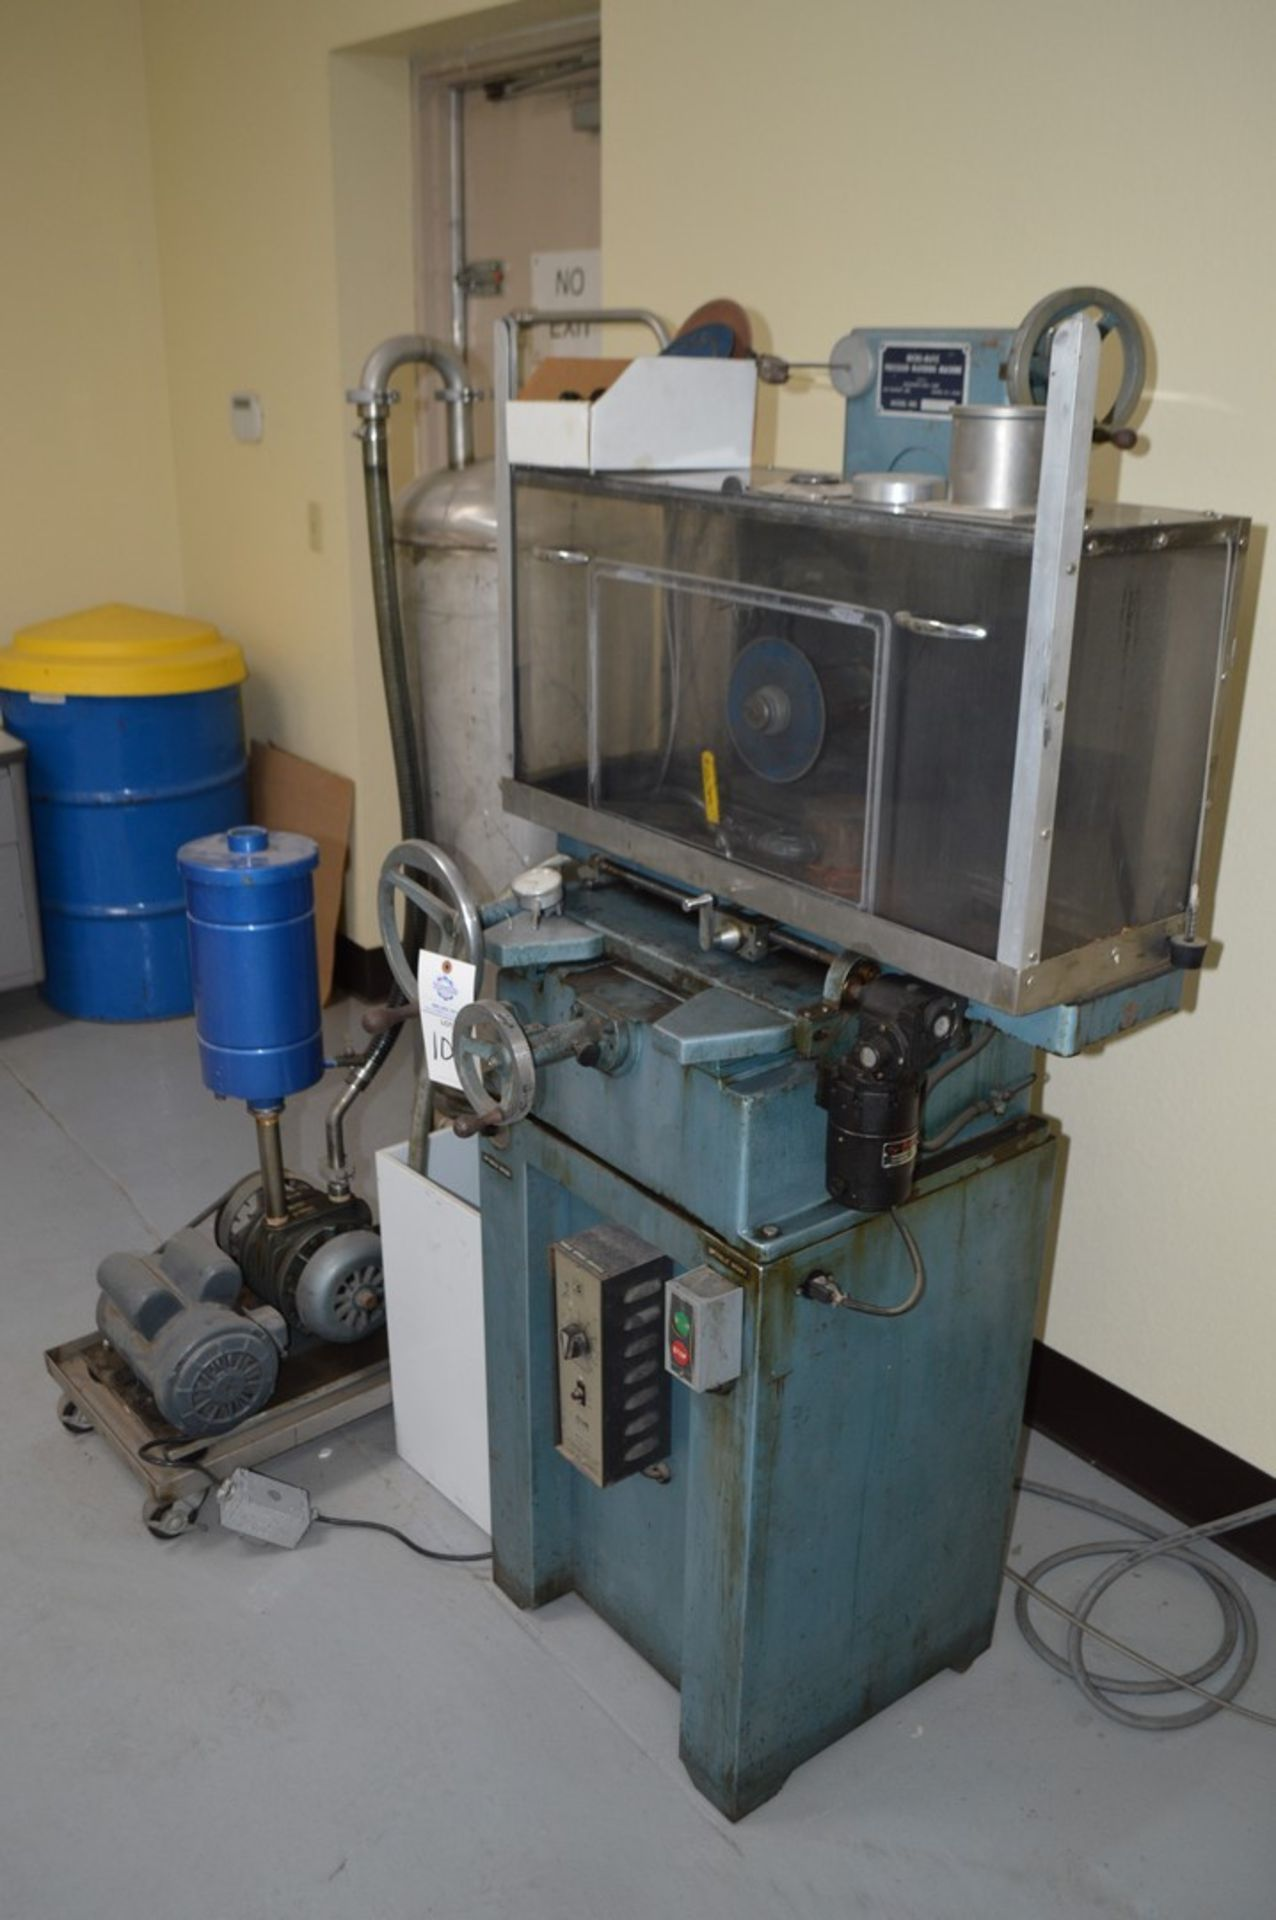 Micromatic Precision Diamond Wafering Saw model WMSA 1743055, spare parts, table and spindle speed - Image 8 of 9